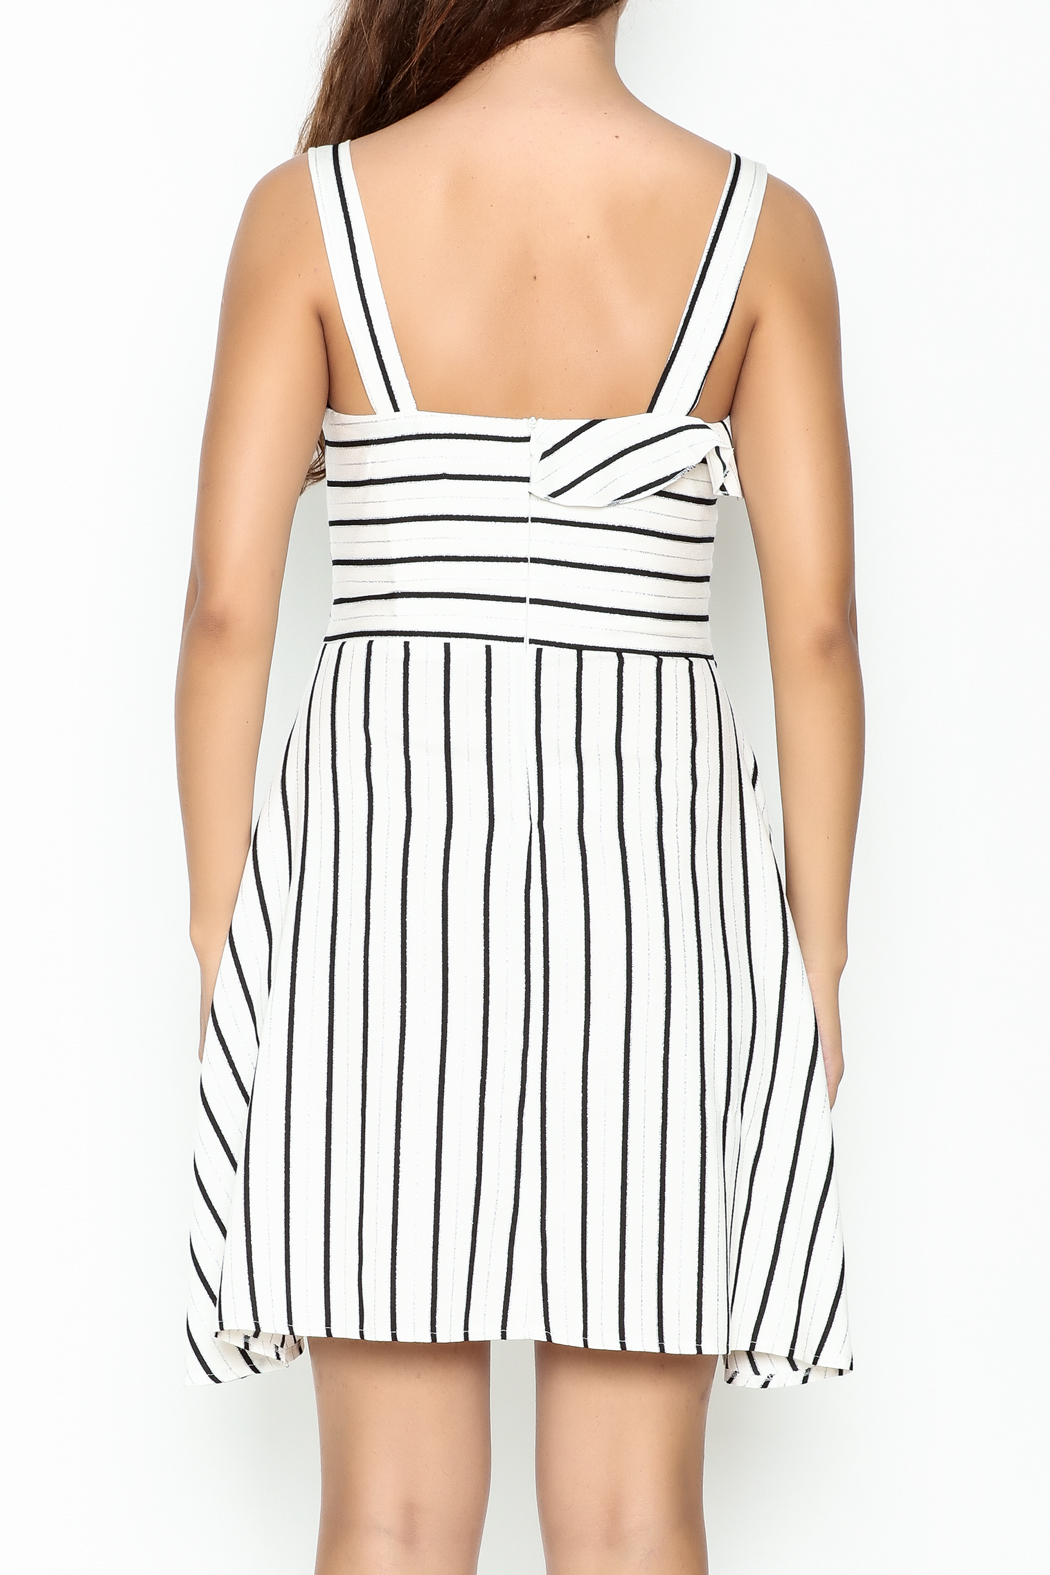 Marvy Fashion Striped Dress - Back Cropped Image